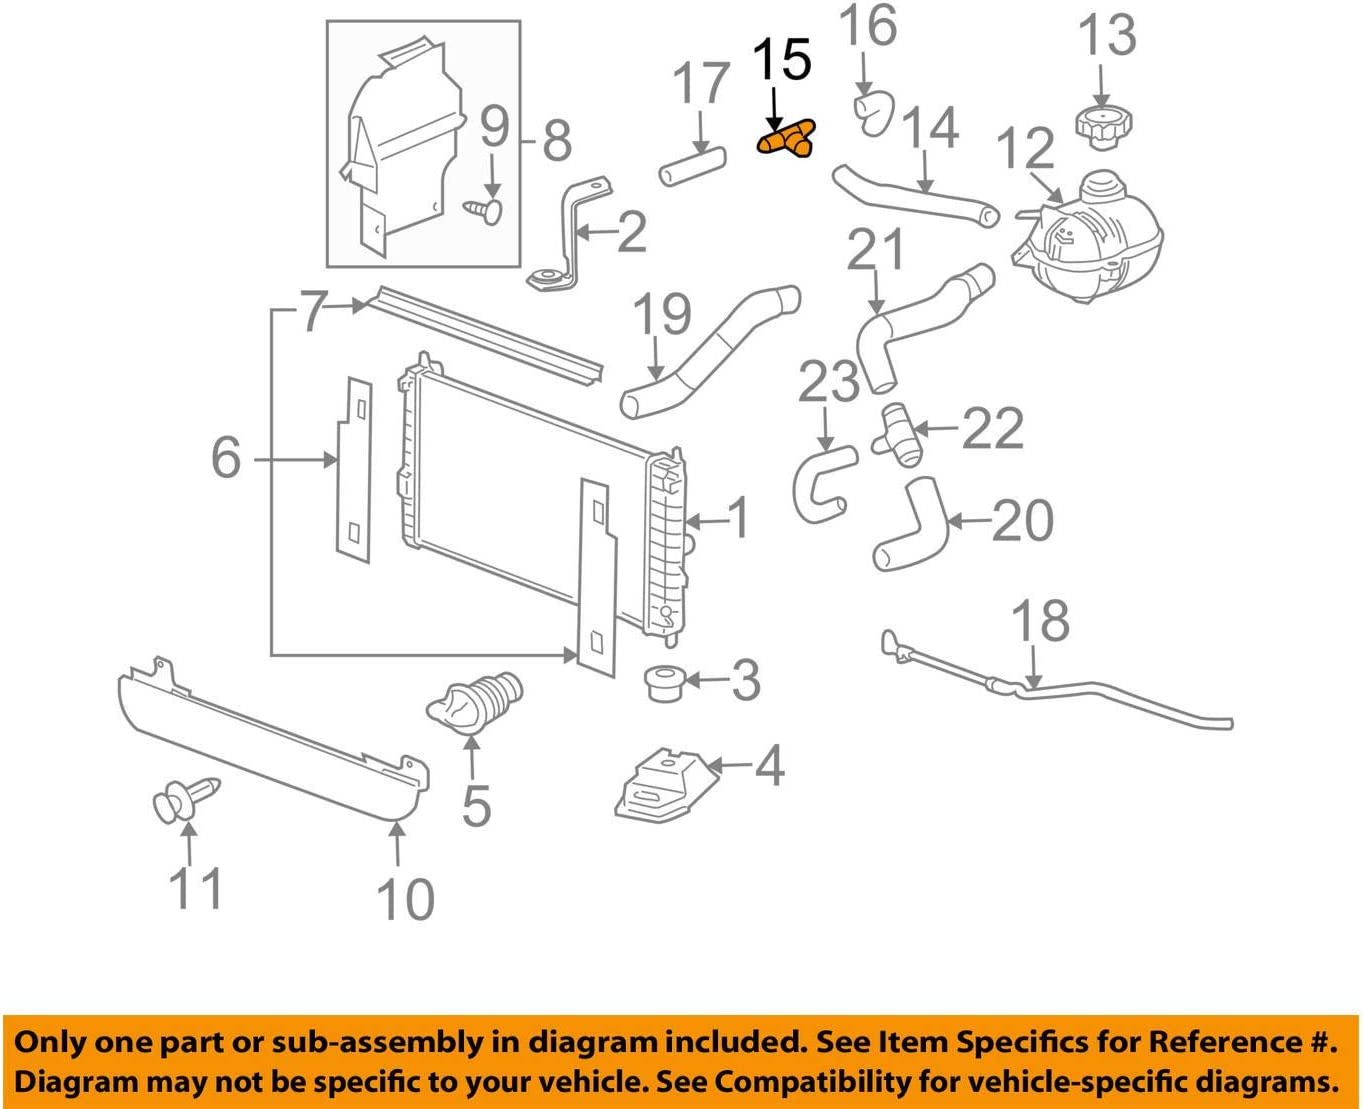 Genuine GM 15982138 Auxiliary Heater Outlet Hose Tee Connector